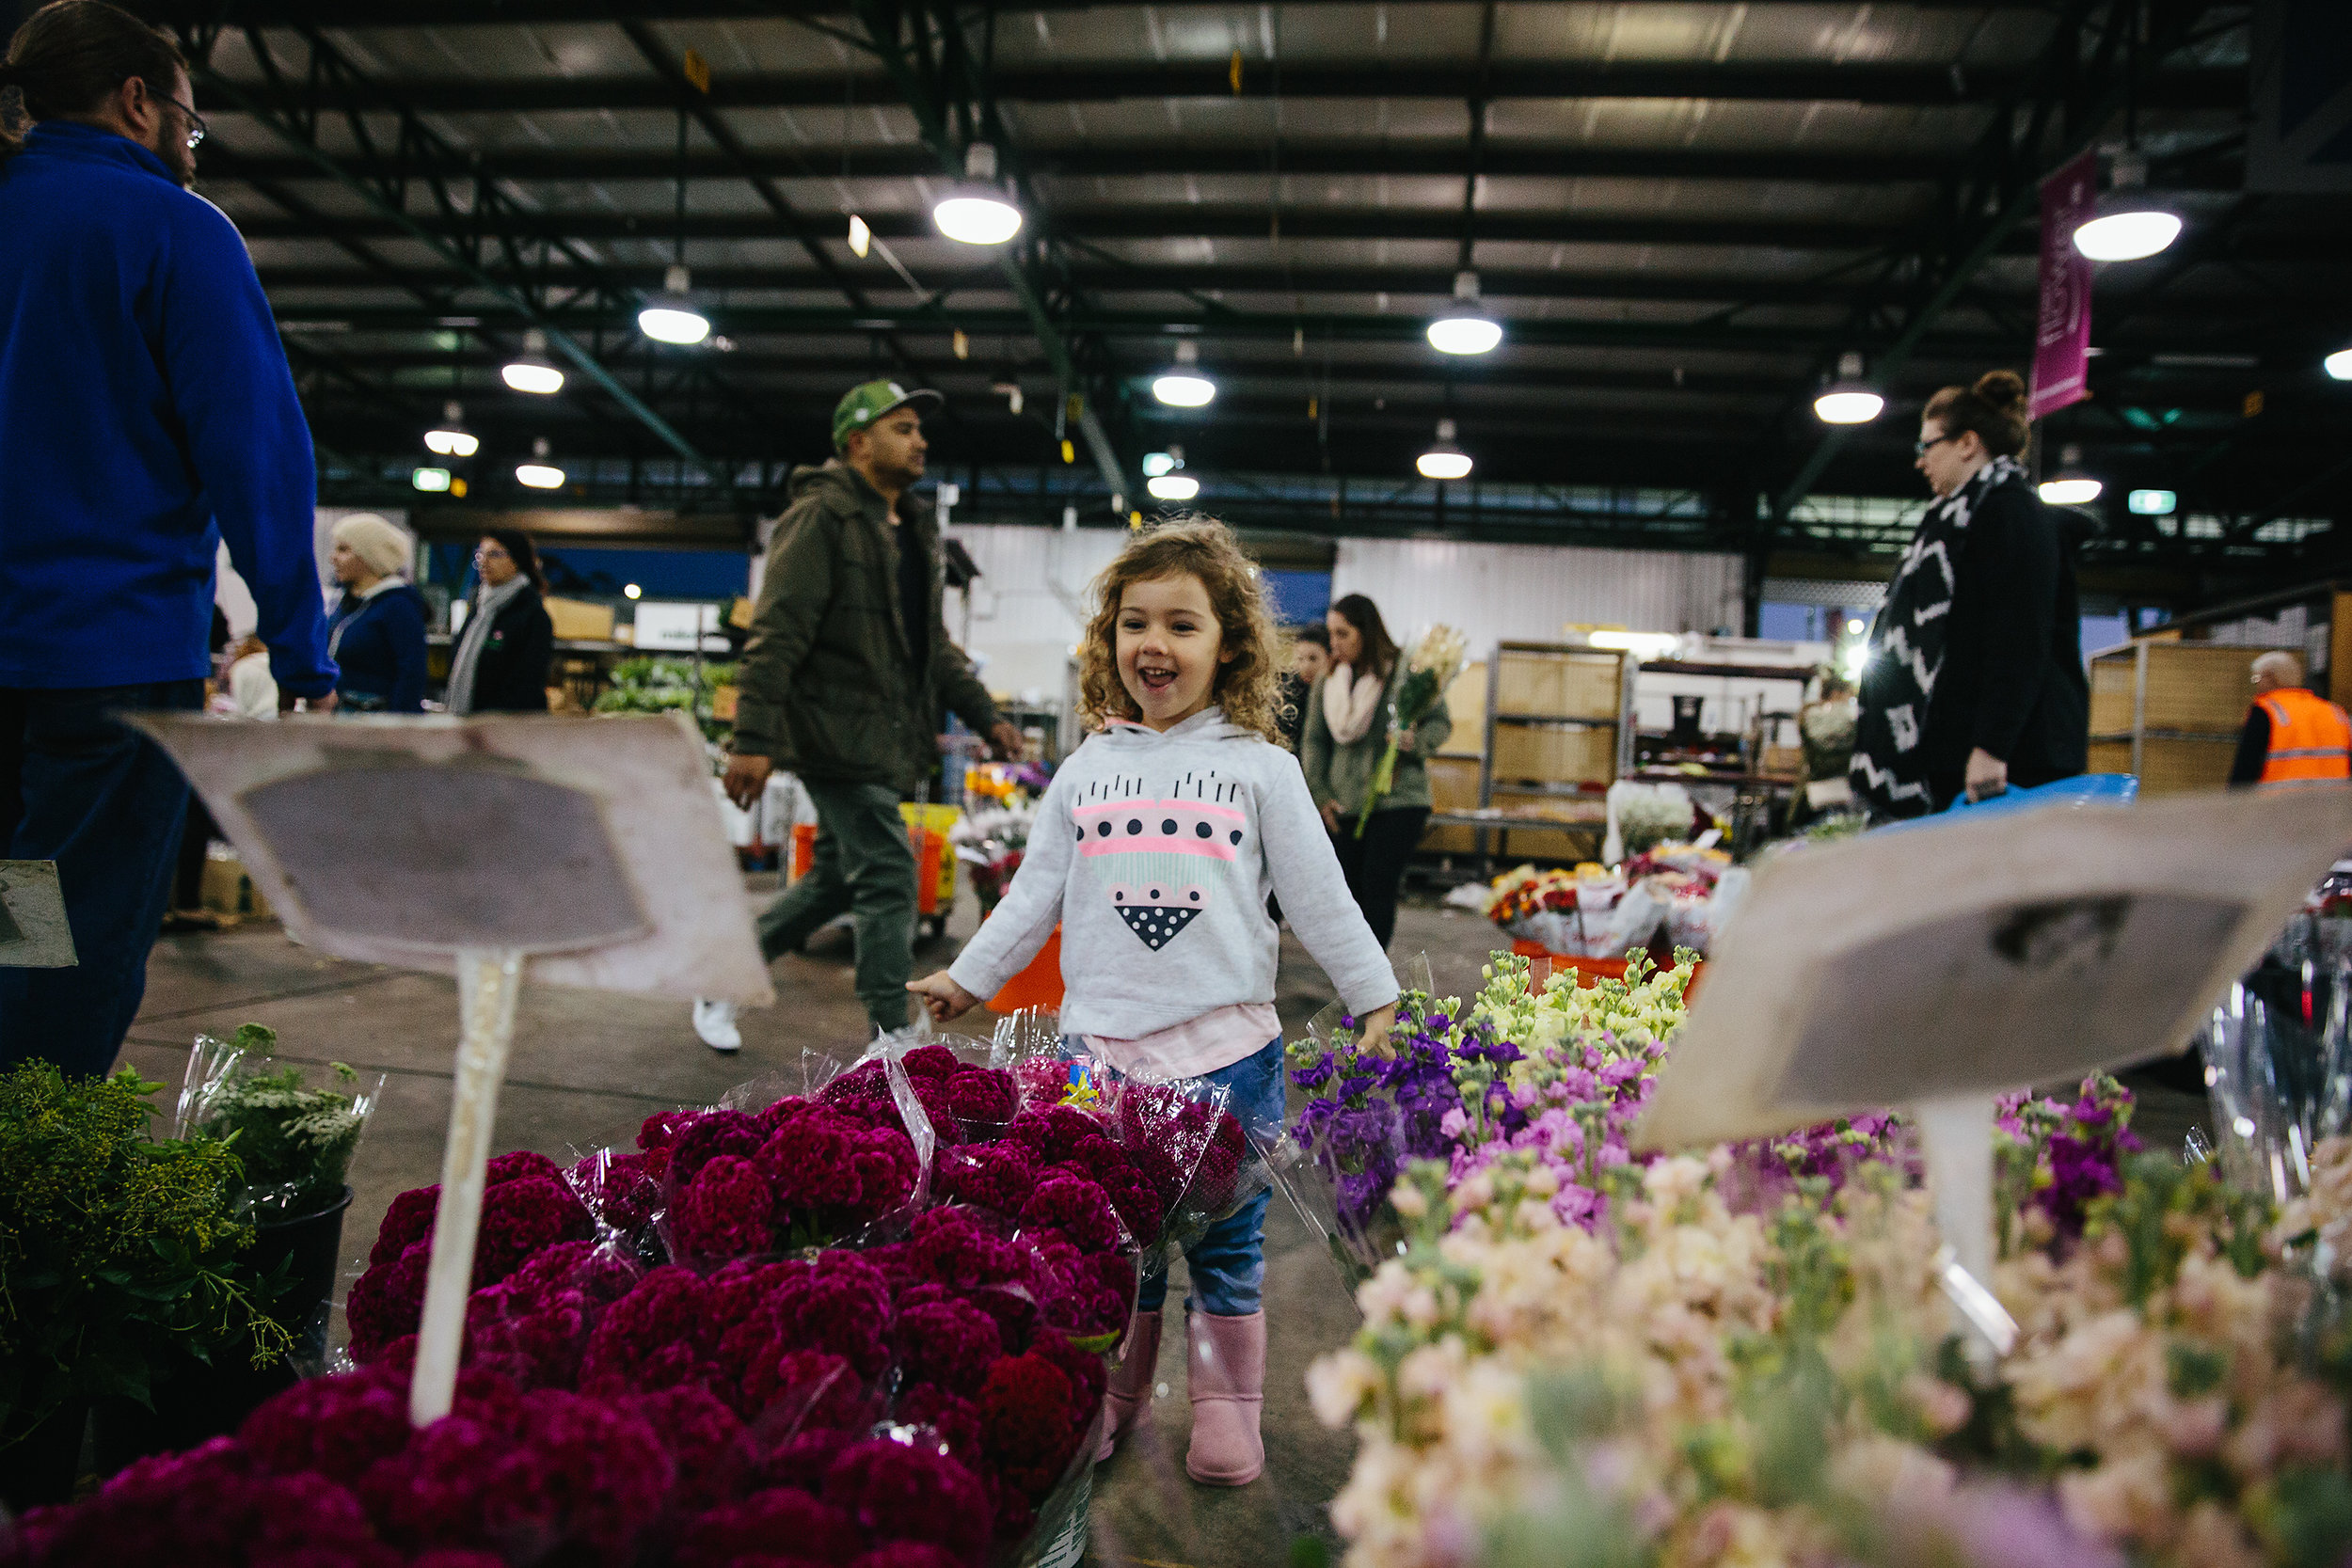 Hills District Photographer | Flower Markets